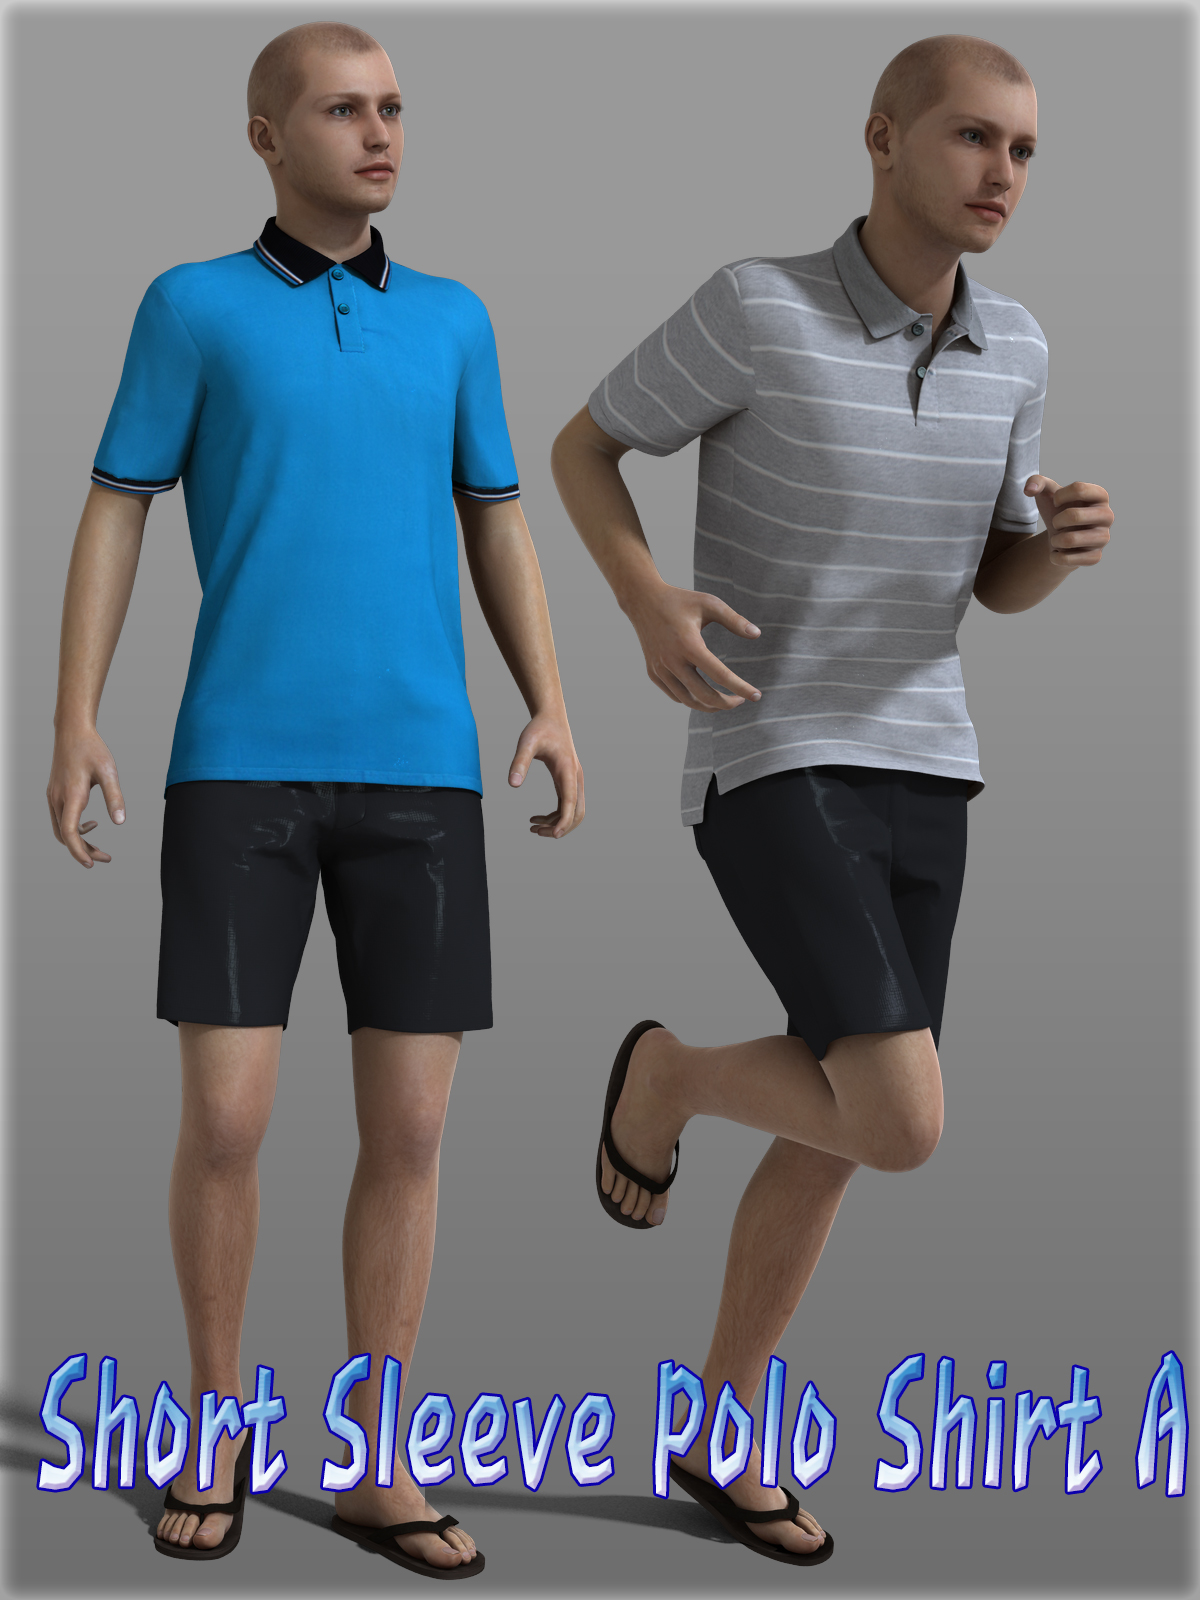 Short Sleeve Polo Shirt A